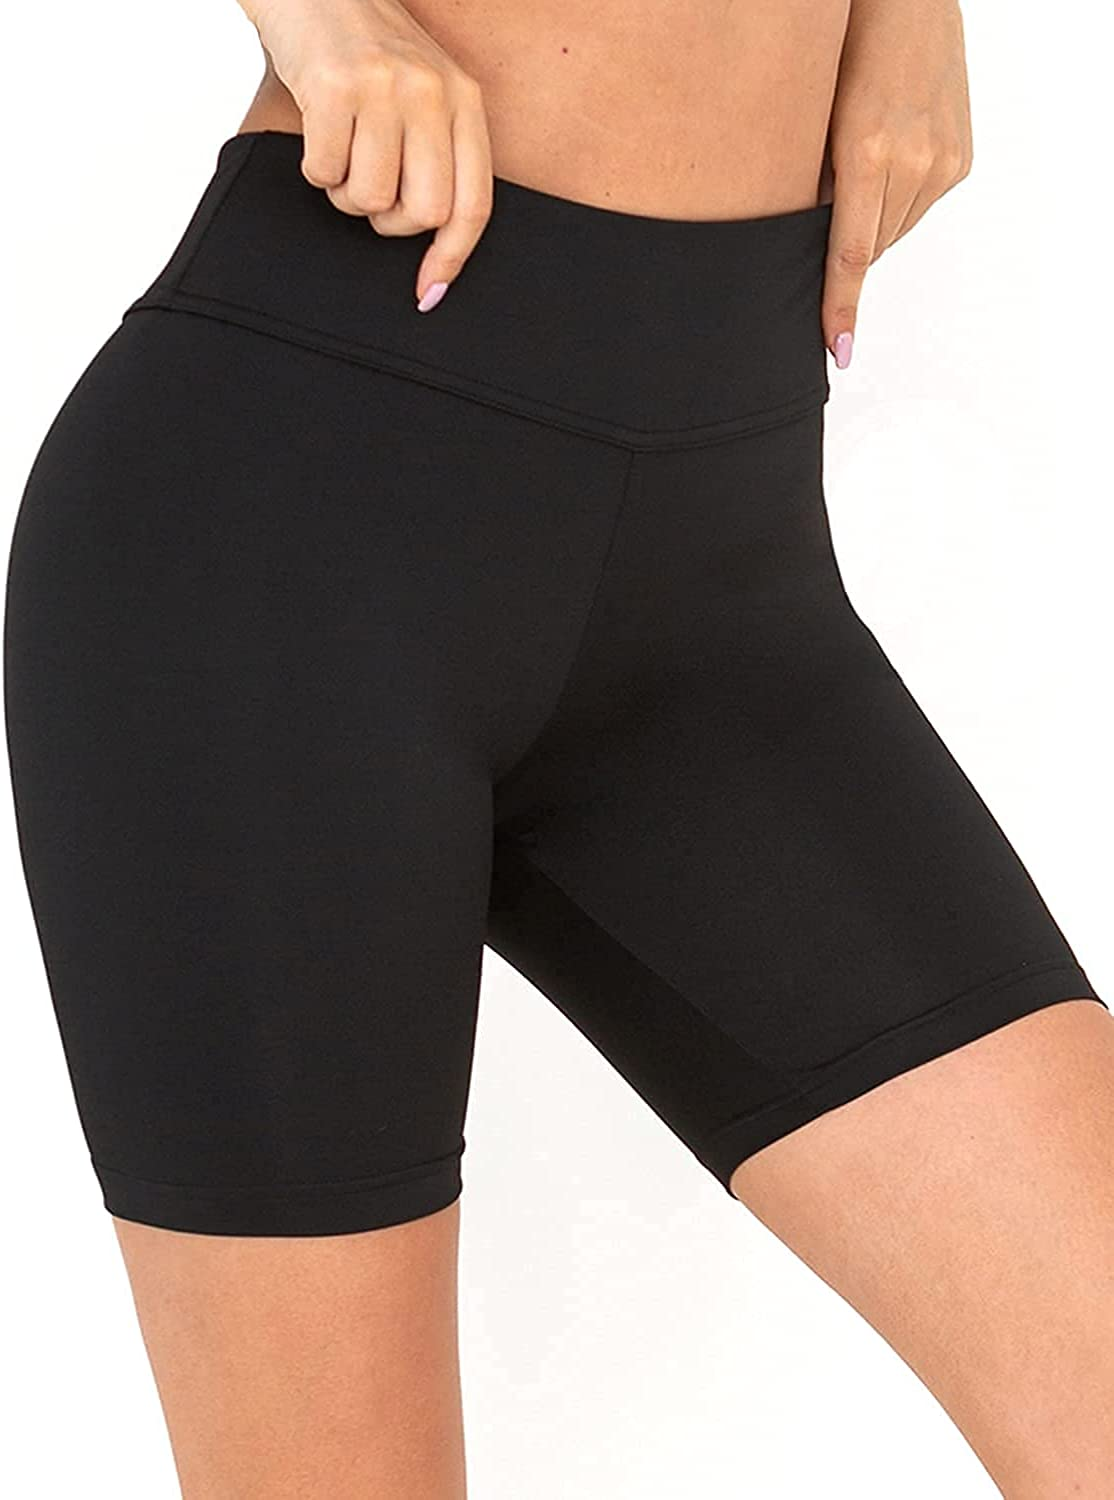 Balleay Art Yoga Shorts for Quantity limited Max 72% OFF Women Control Waisted Wor High Tummy